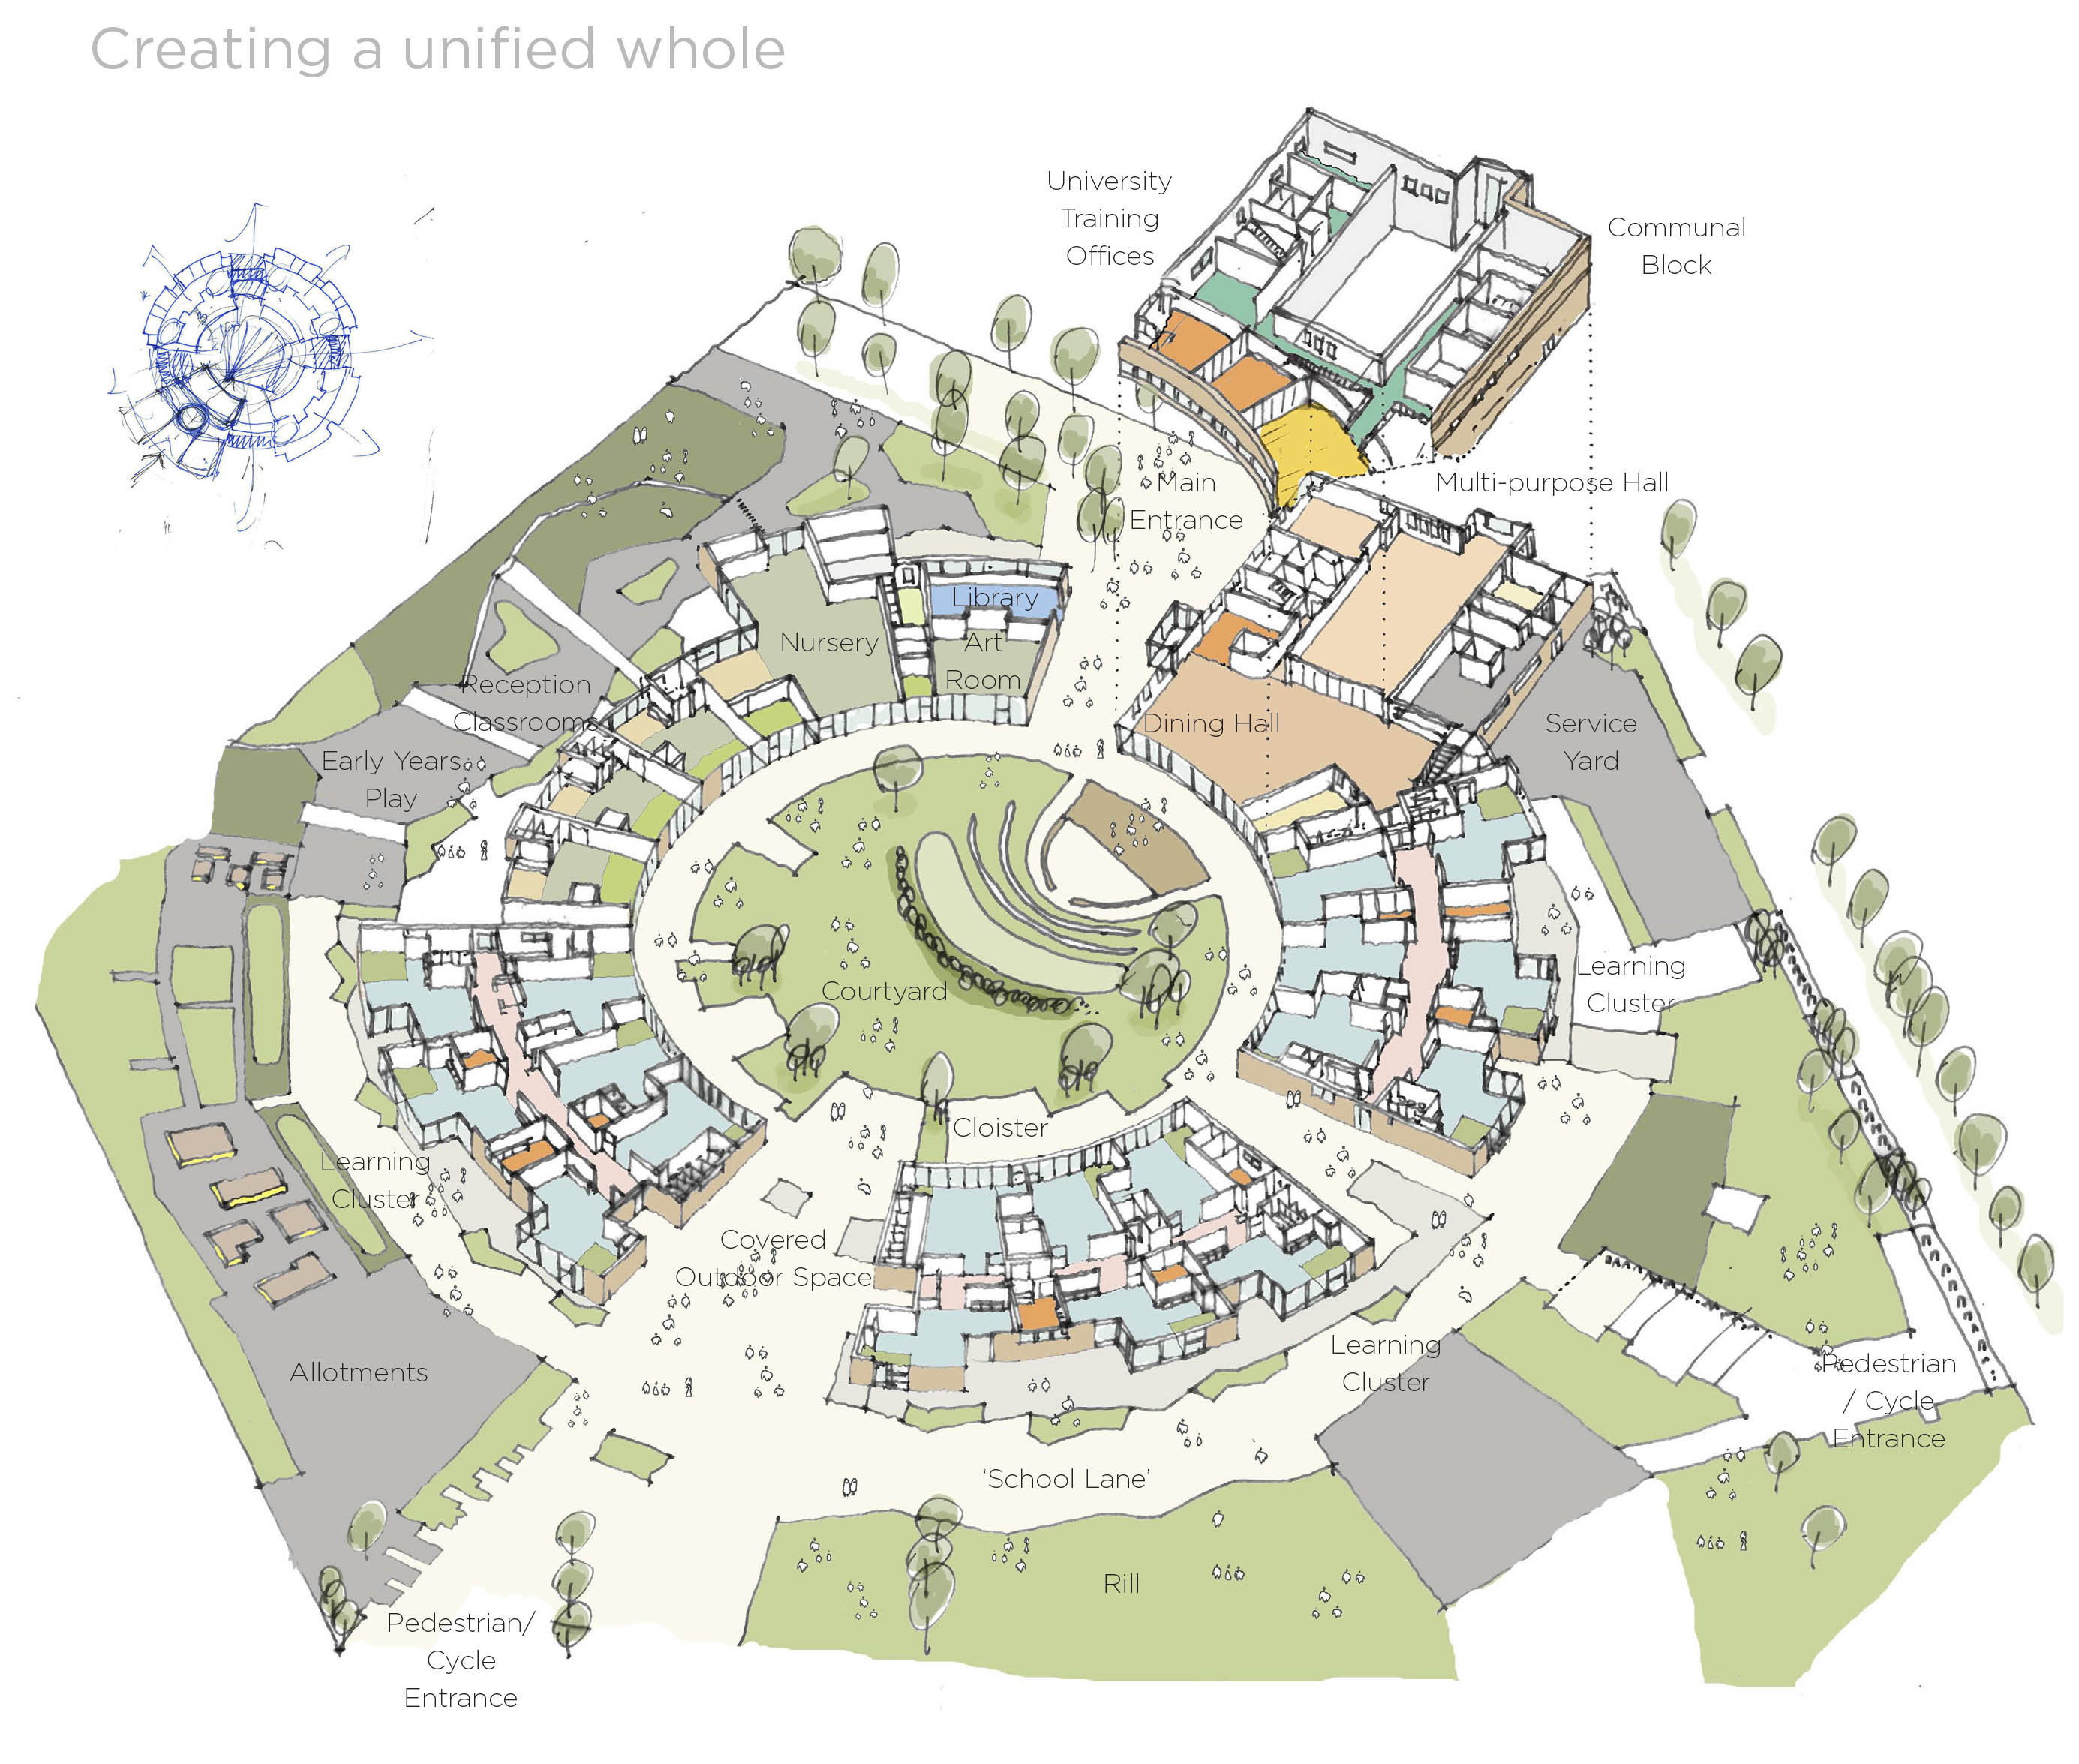 University of Cambridge Primary School Unified Whole by Marks Barfield Architects